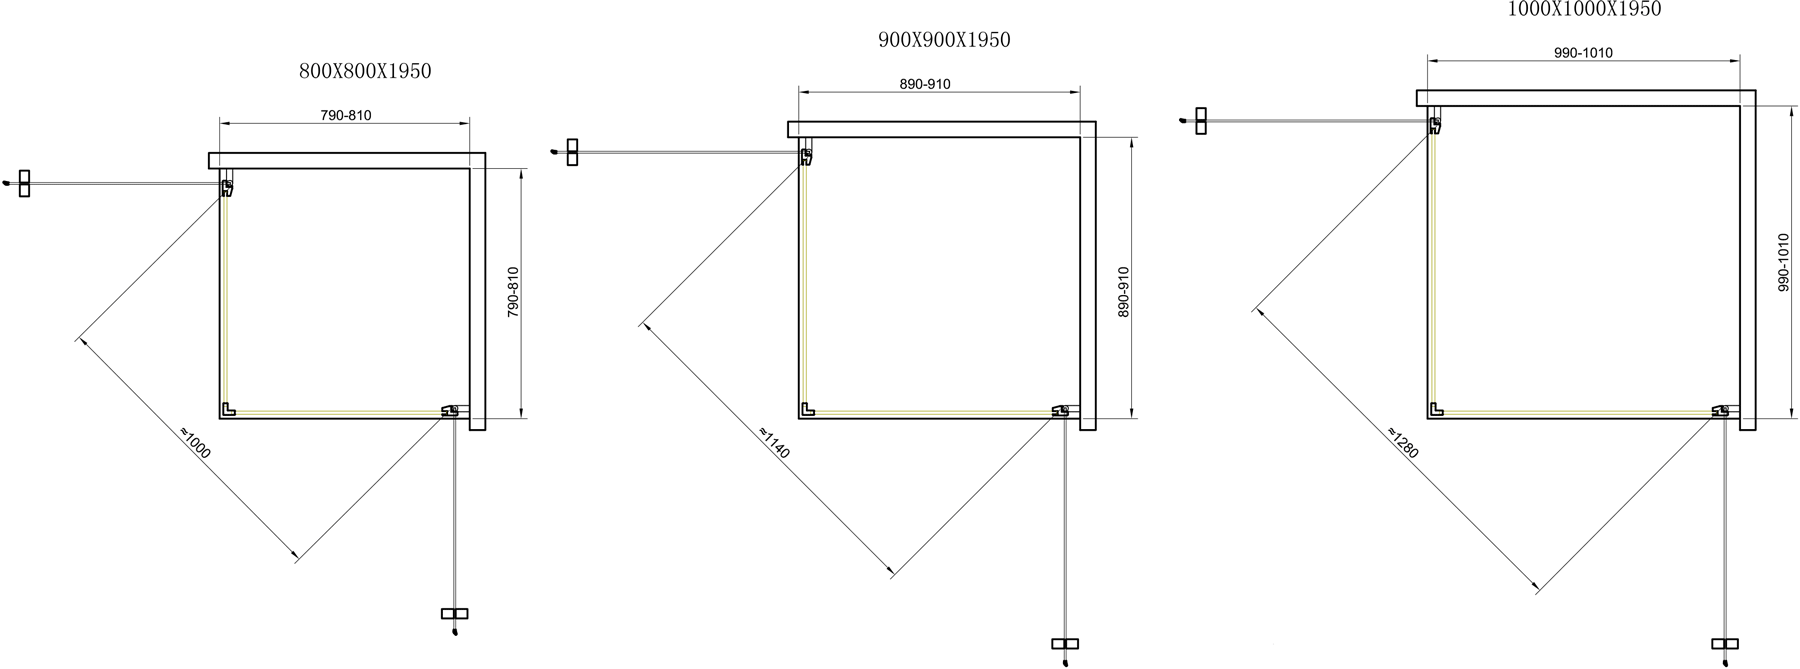 TECHNICAL DRAWING tech-marbella-angle-A652